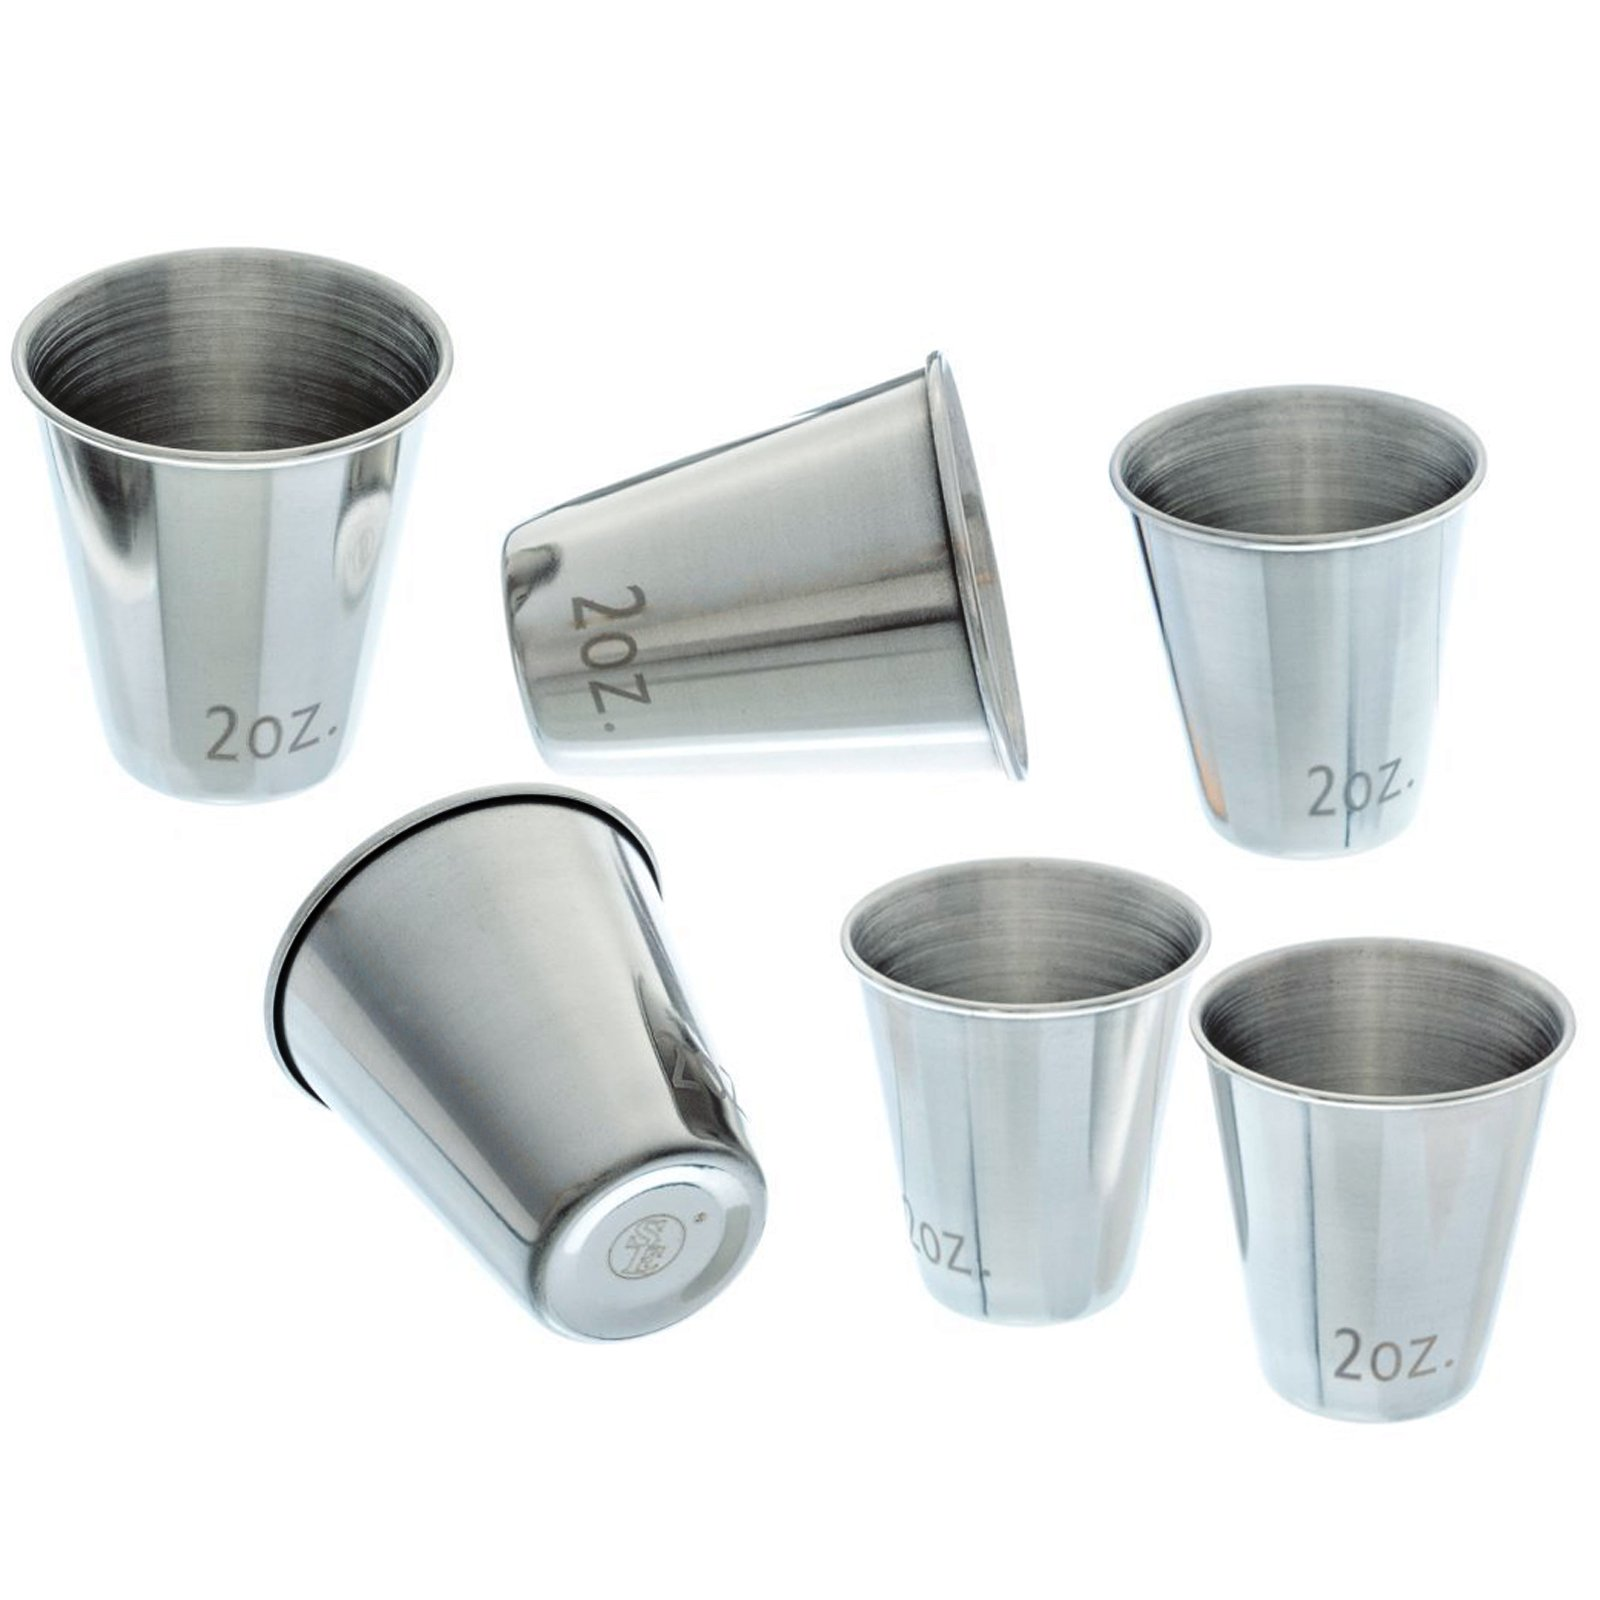 ASR Outdoor Stainless Steel Shot Glass Set - 6 Pack